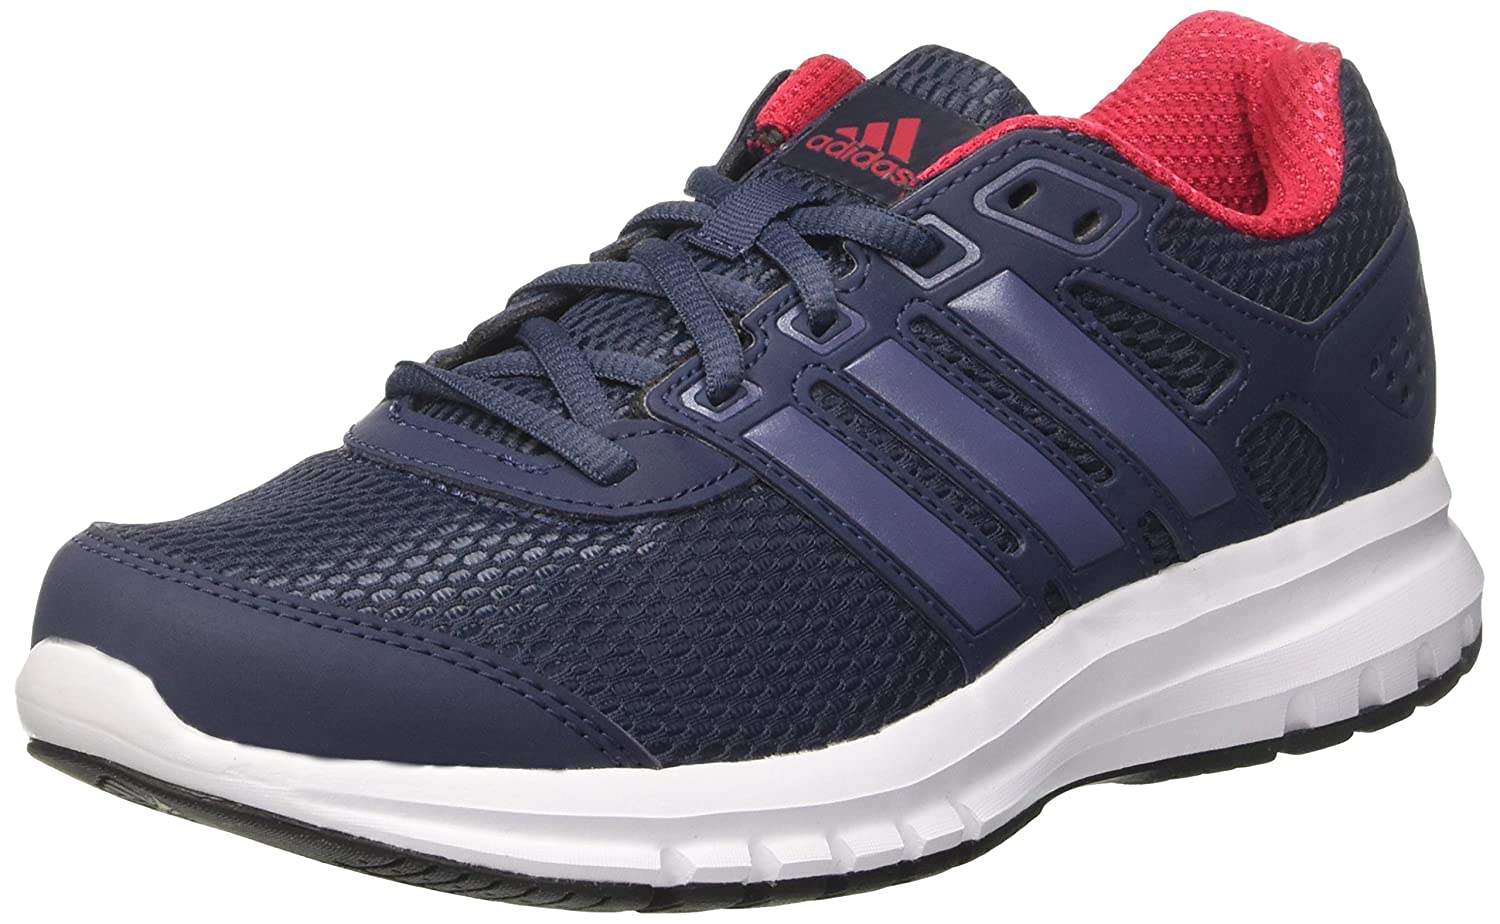 adidas Women s Duramo Lite W Running Shoes  Amazon.co.uk  Shoes   Bags e1889e9b85fb6